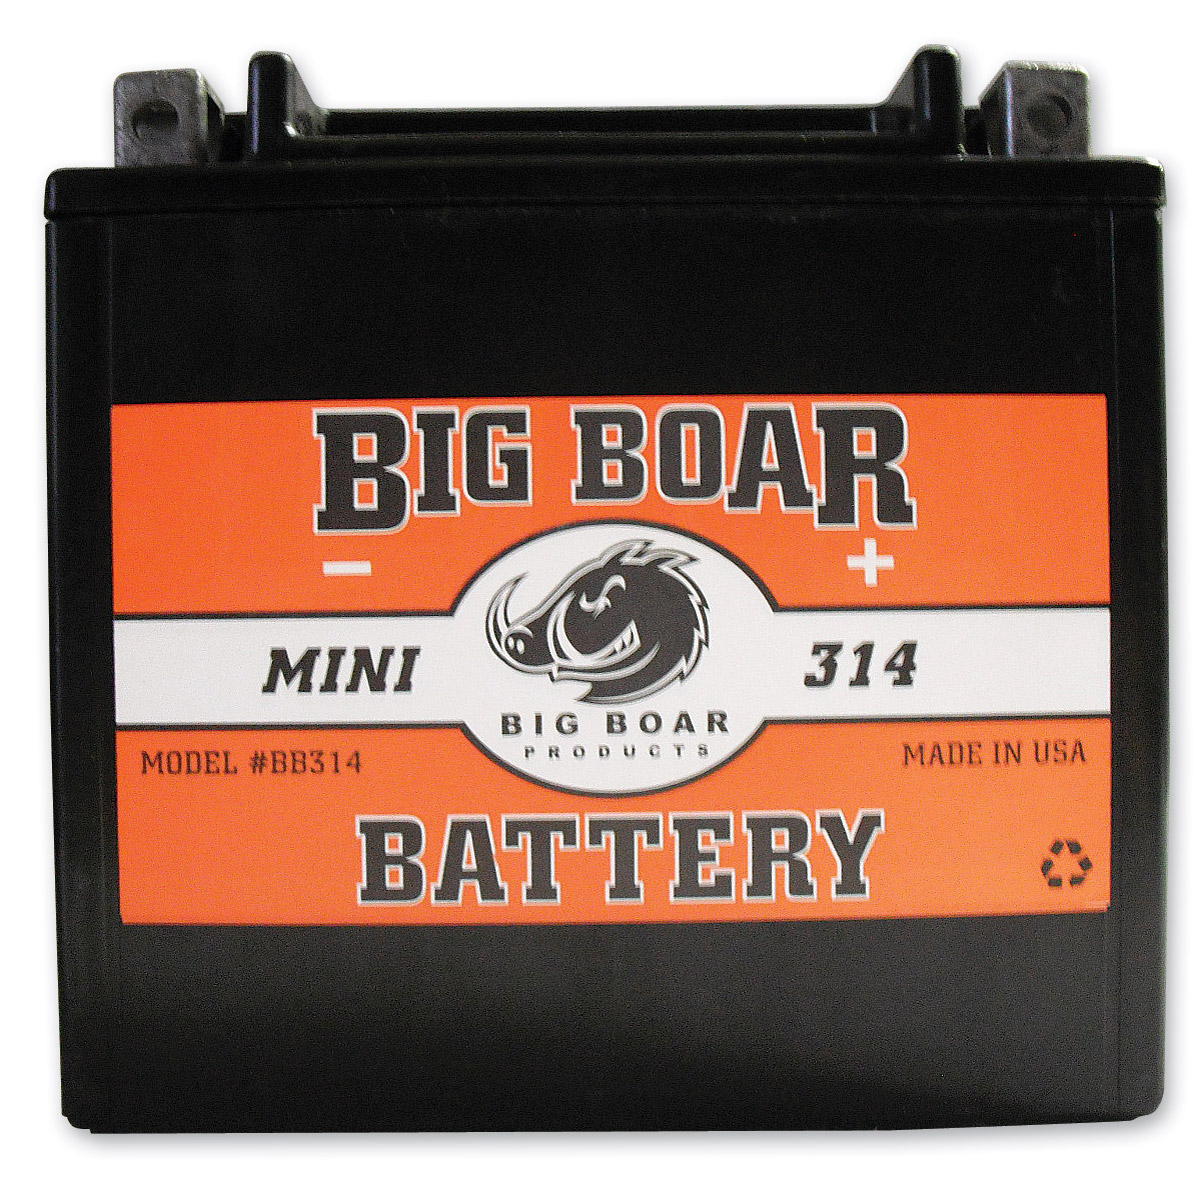 Big Boar Battery Model BB314